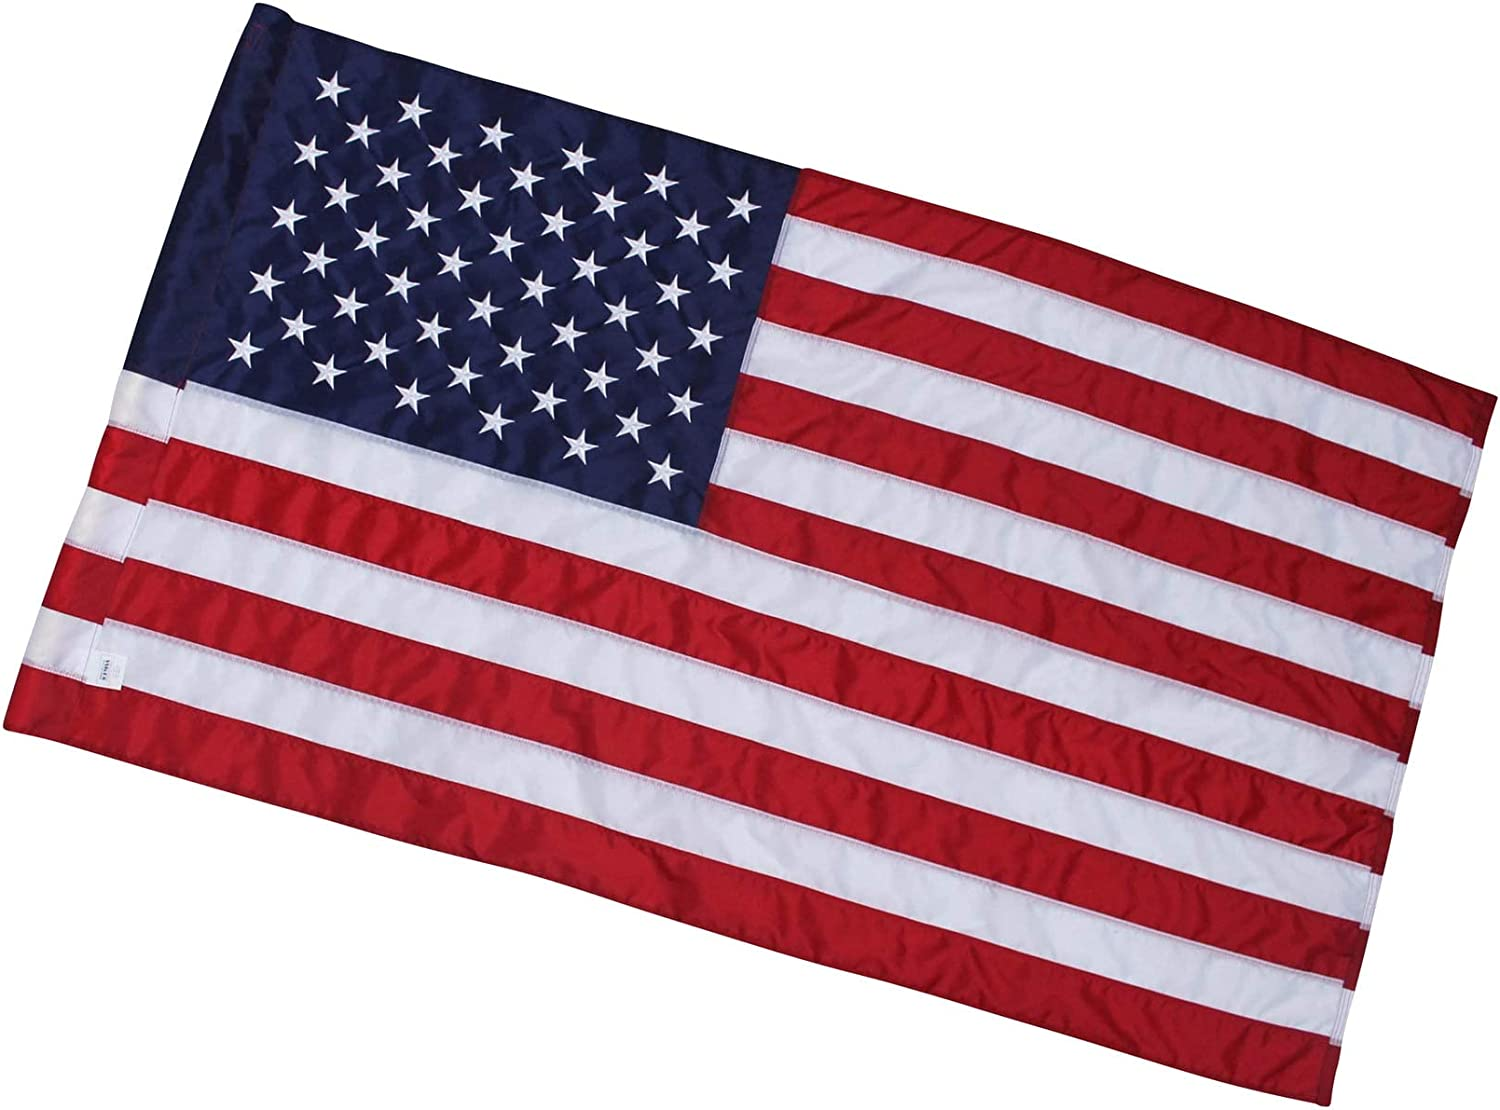 "3x5 Ft American Flag - Pole Sleeve Header | 100% Made in USA | 3'x5' US Flag in Heavy Duty Outdoor Nylon - UV Fade Resistant - Premium Embroidered Stars, Sewn Stripes, and 2"" Pole Hem"